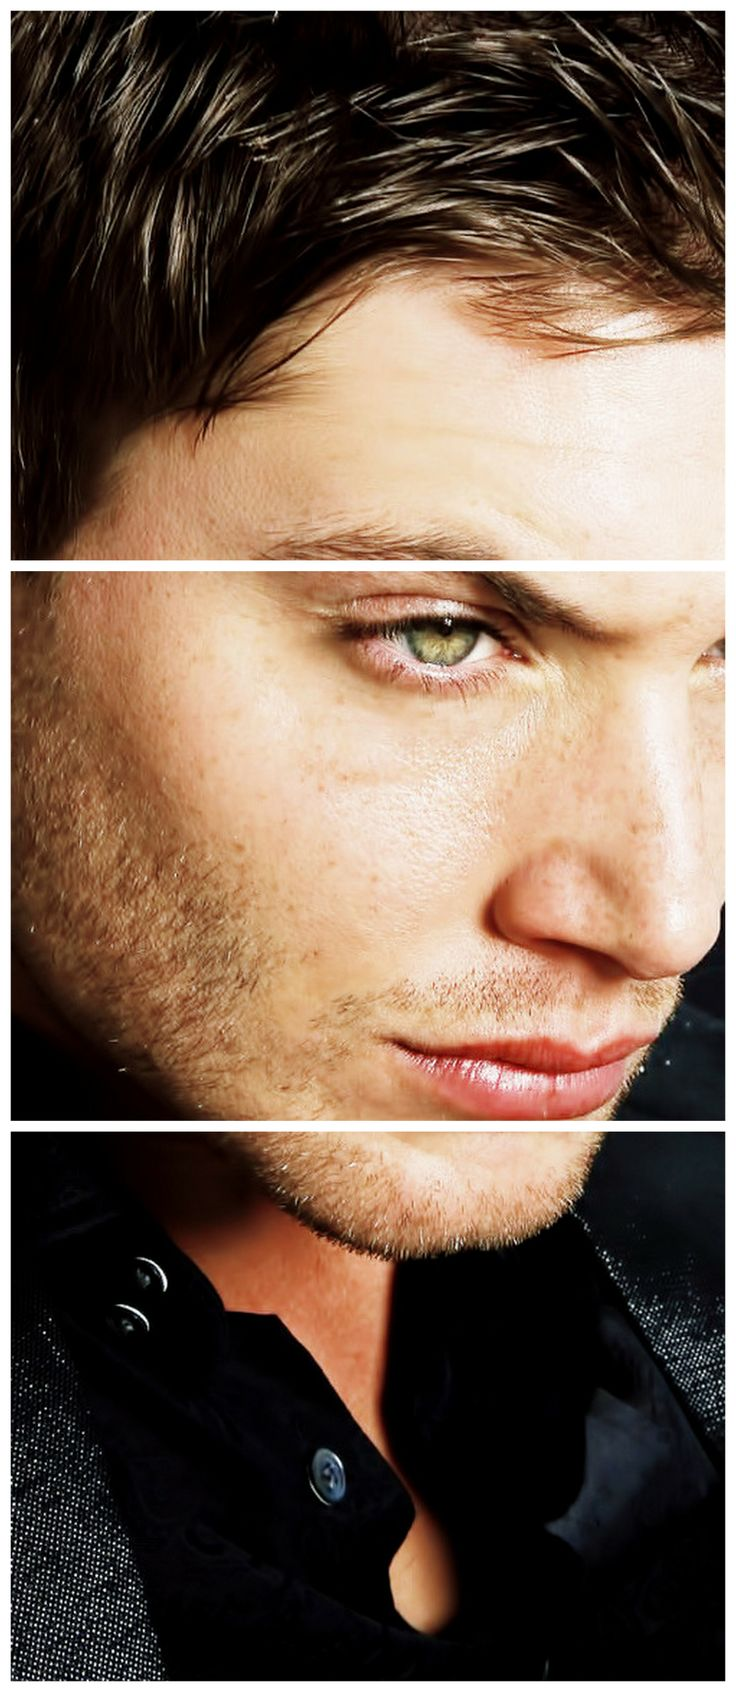 Freckles galore! Luscious lips!  #JensenAckles